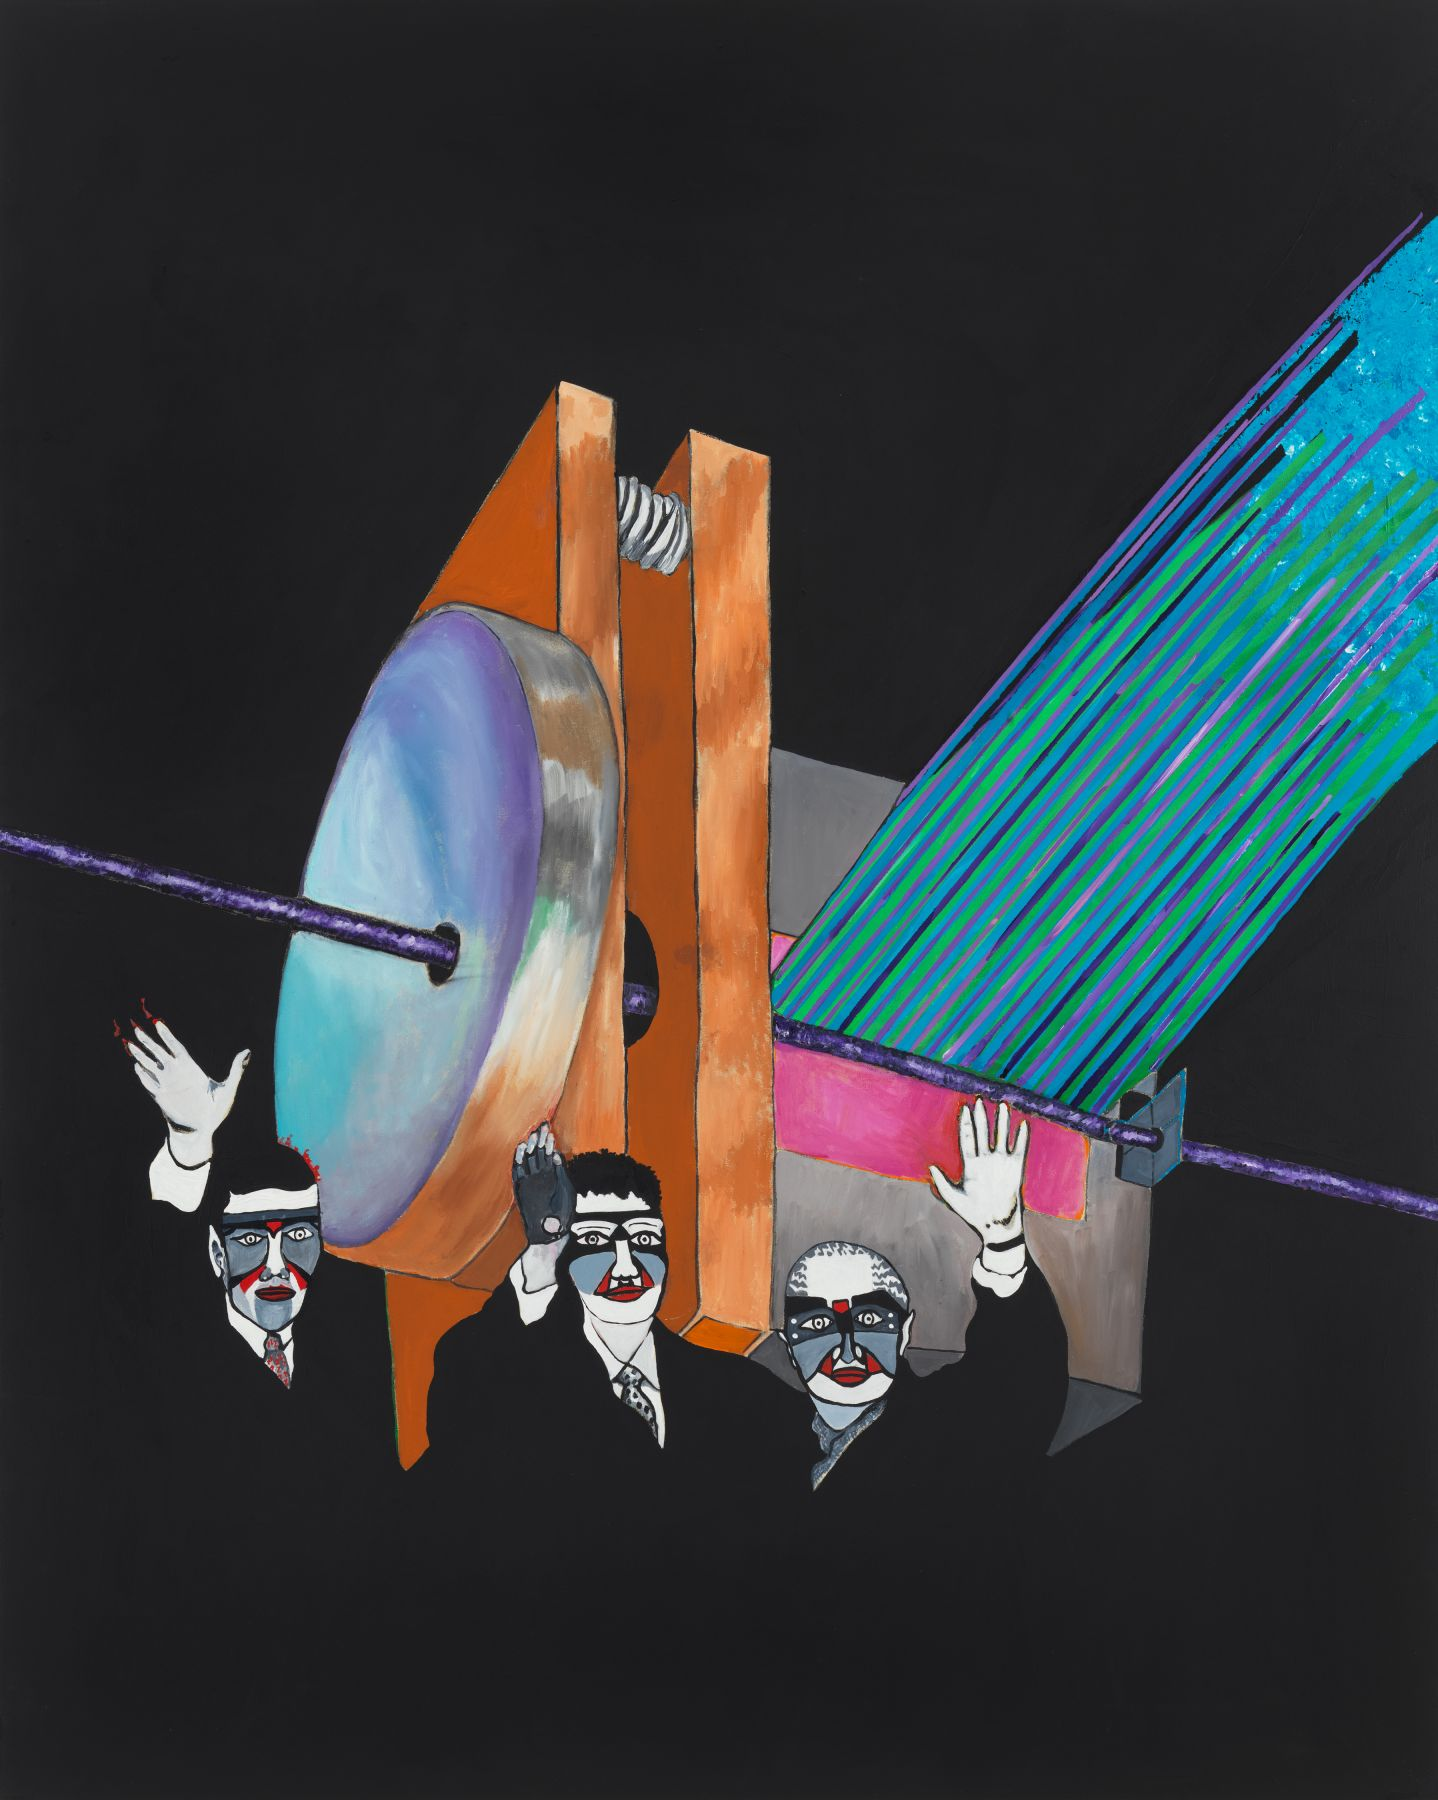 The Machine (Who Art These Masked Men?), 1988